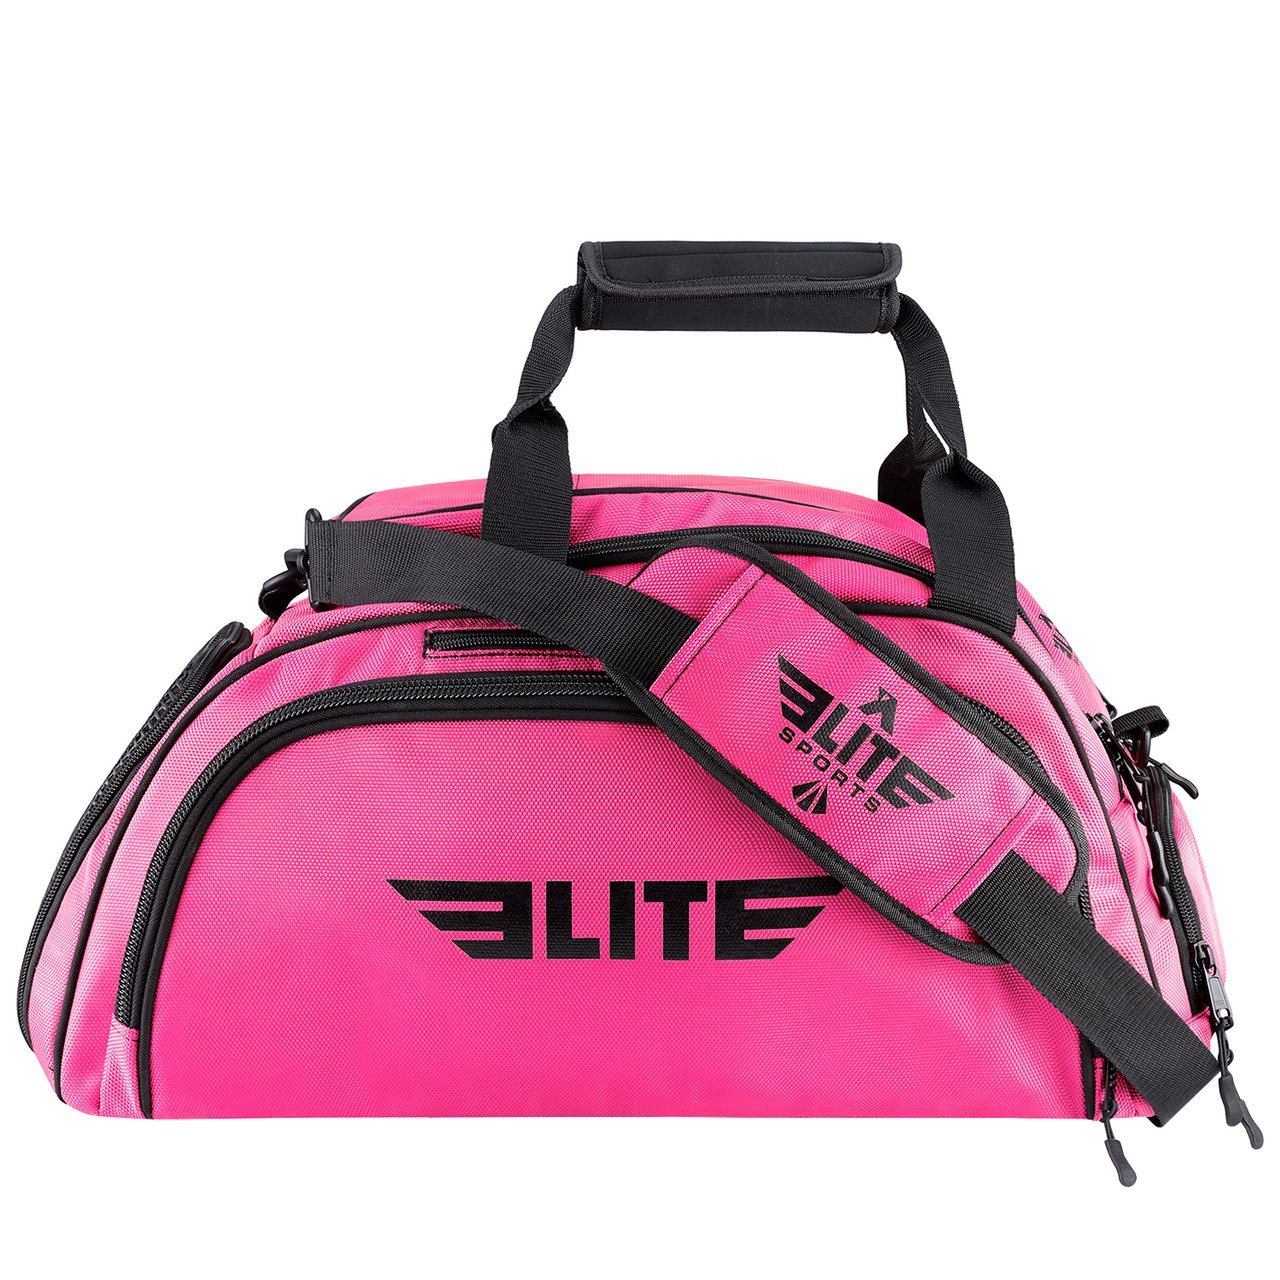 Elite Sports Warrior Series Pink Large Duffel Brazilian Jiu Jitsu BJJ Gear Gym Bag & Backpack